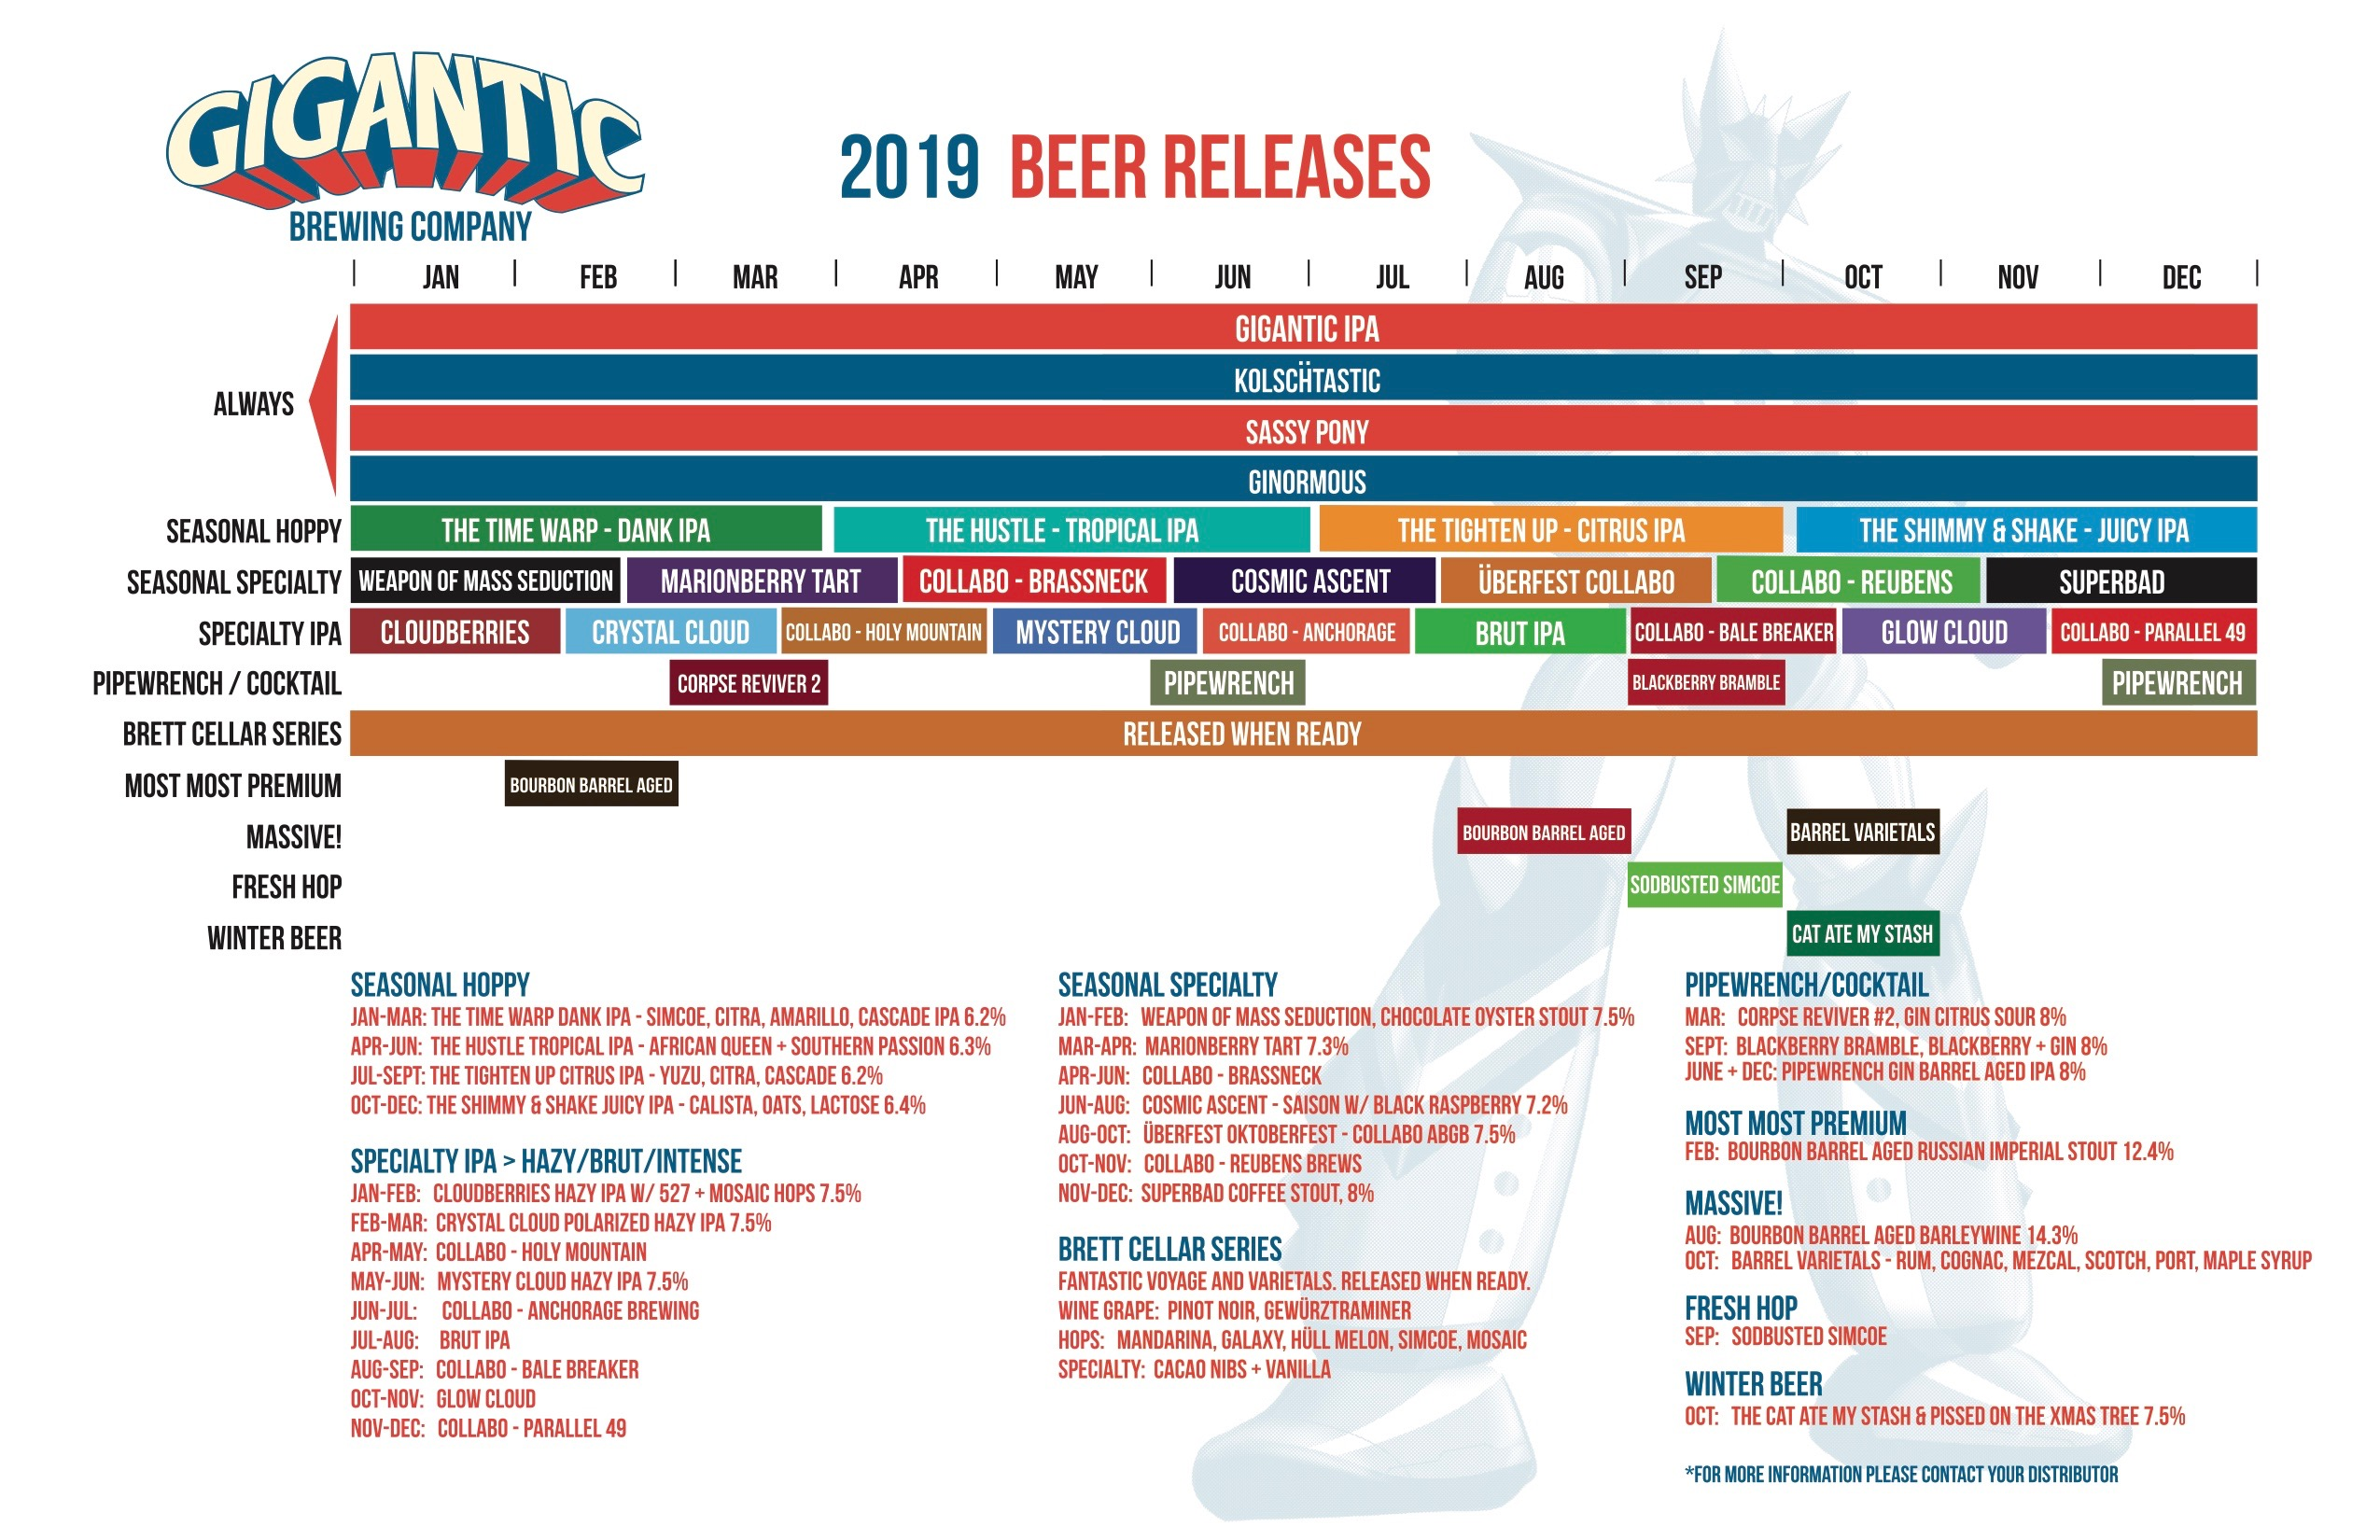 Gigantic Brewing 2019 Beer Release Calendar